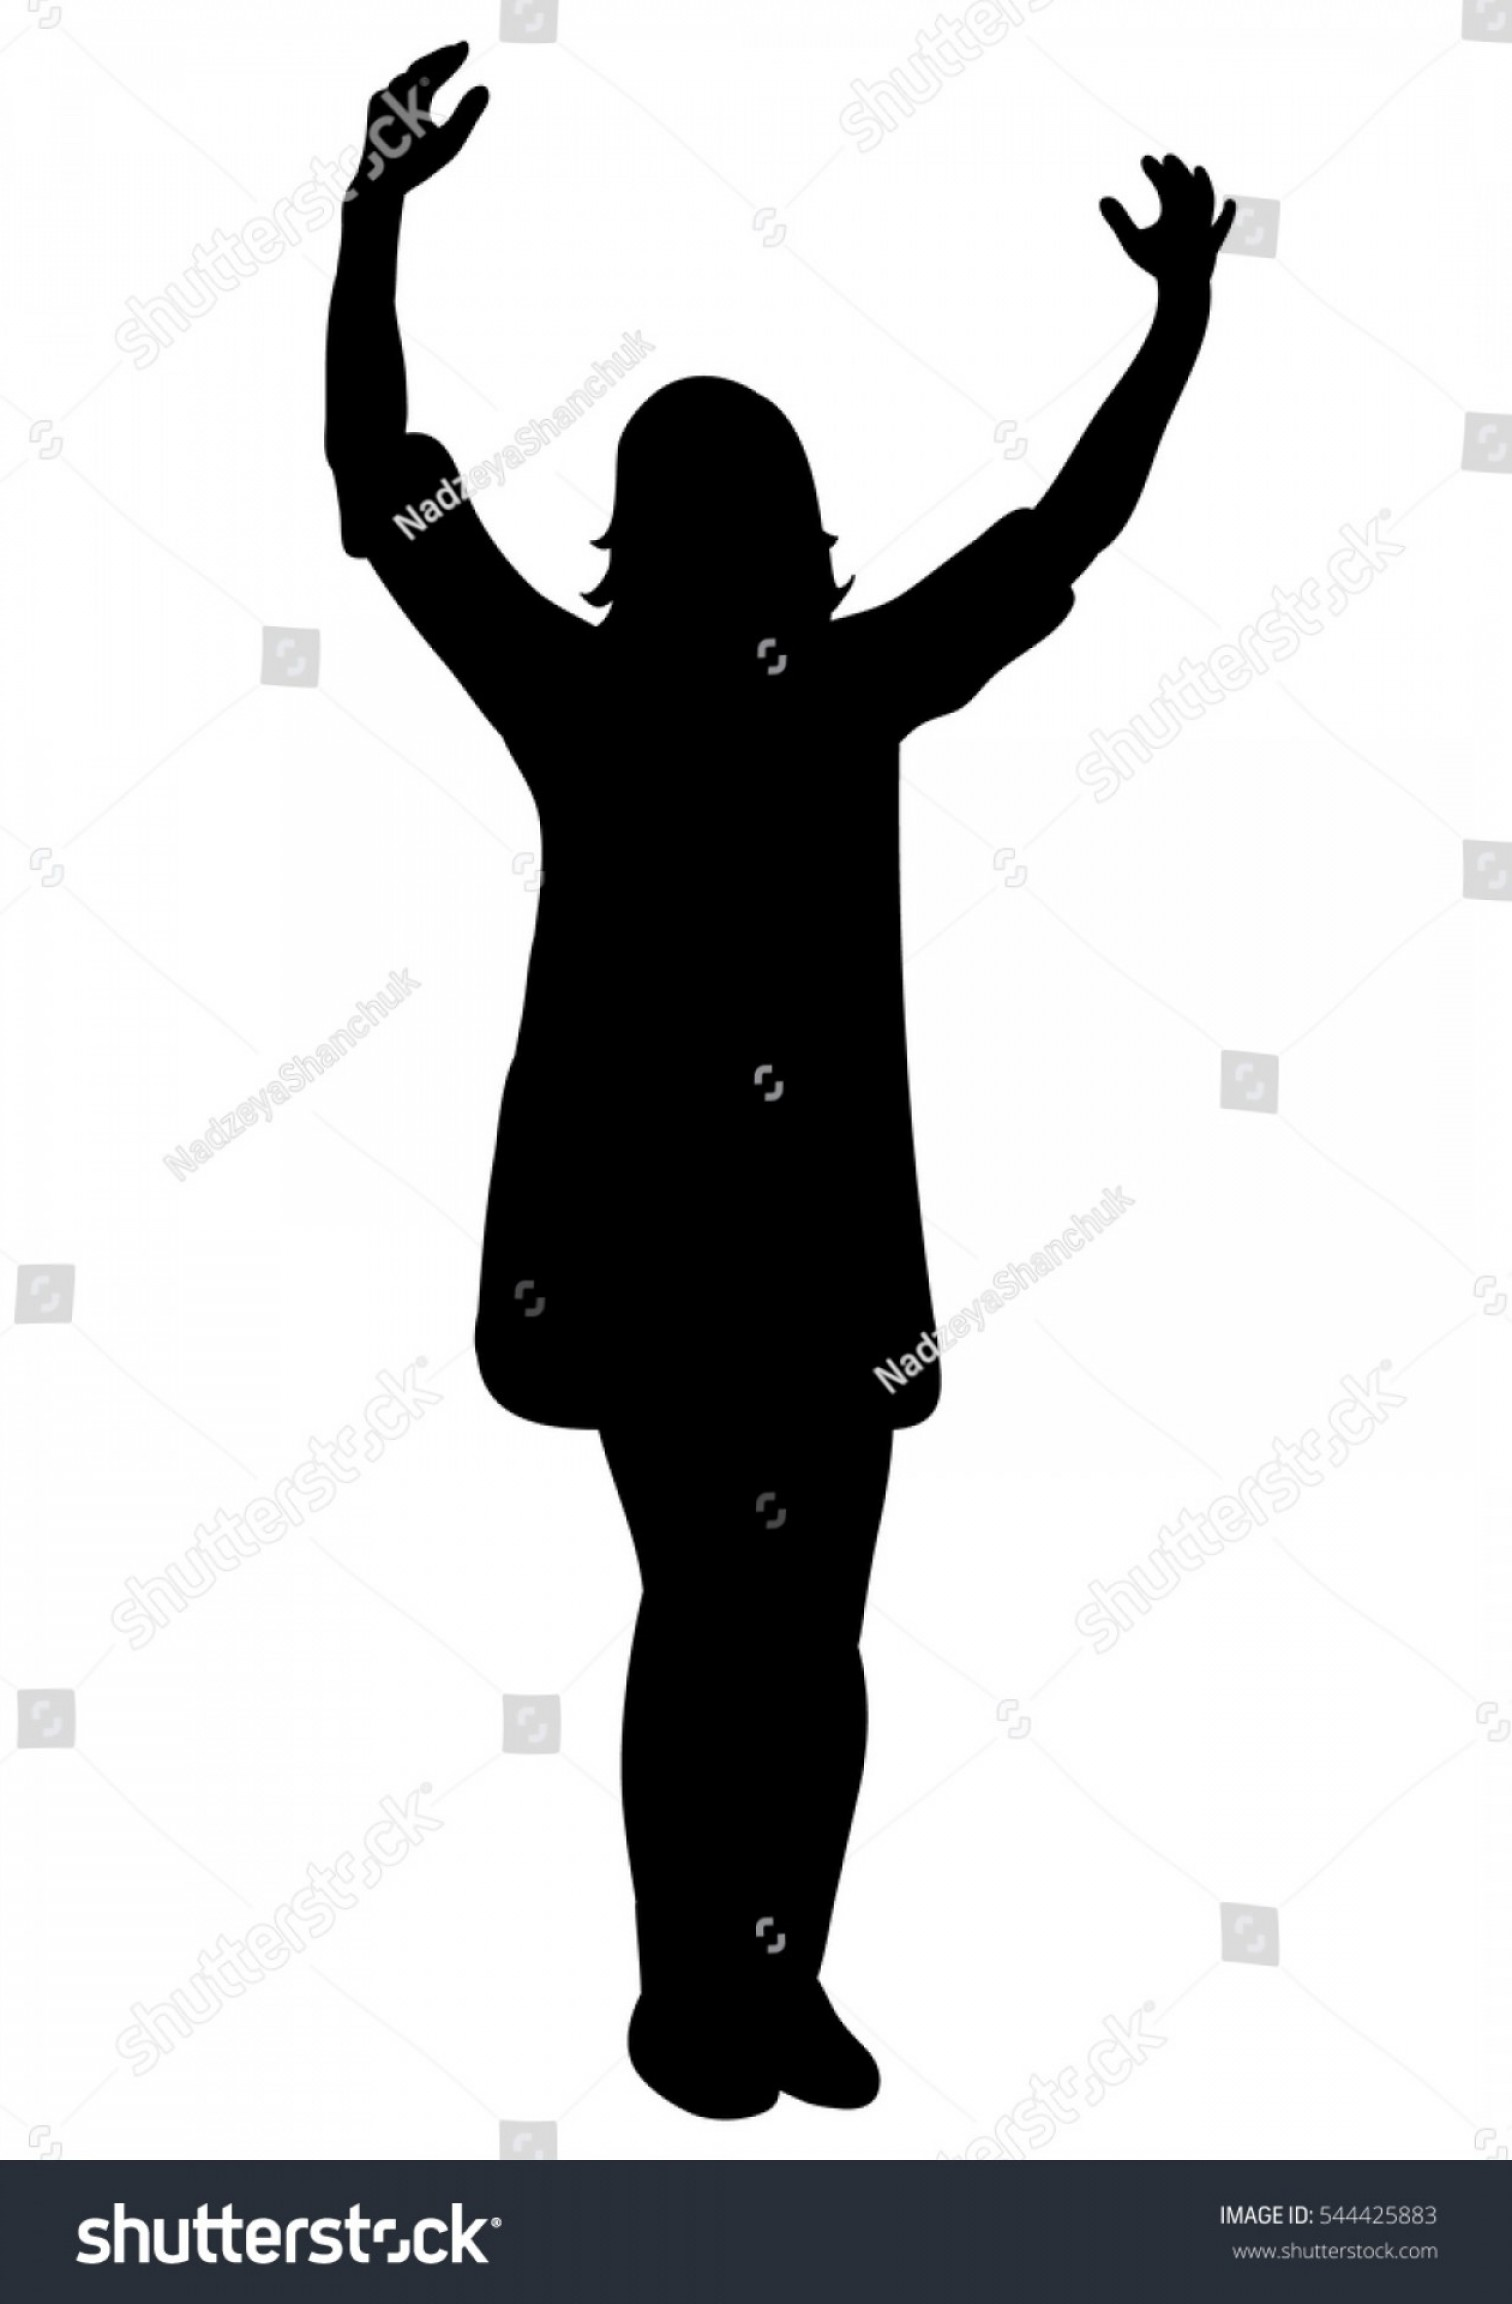 Holding Hands Up Silhouette Vector: Vector Isolated Silhouette Girl Holding Hands